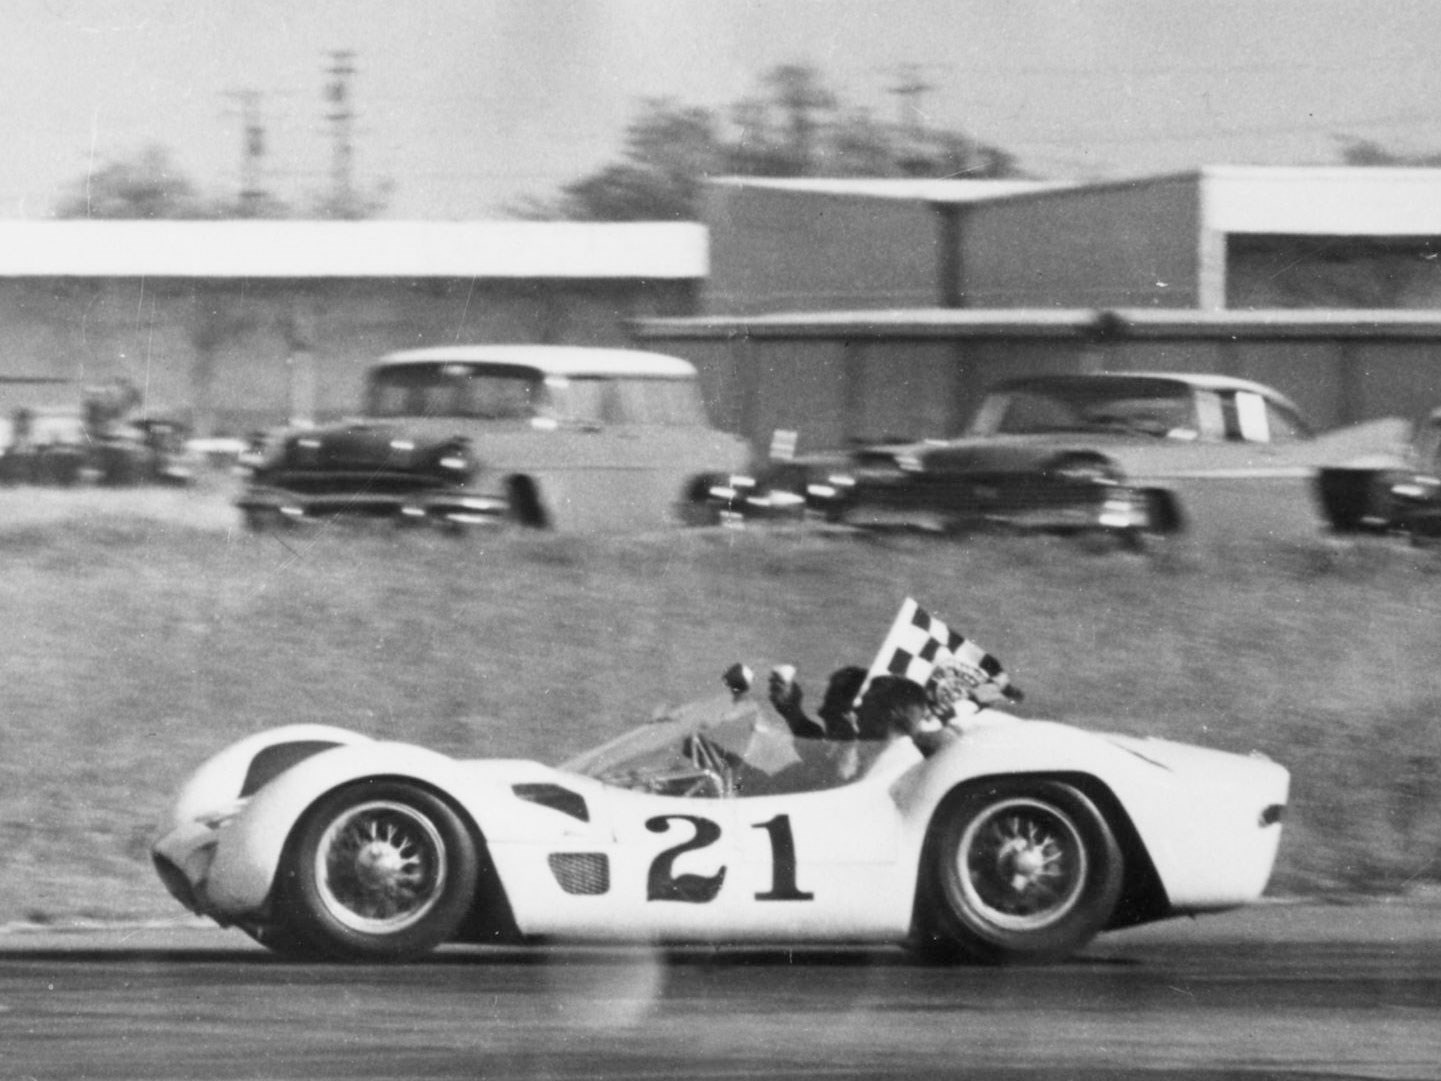 Maserati Tipo 60, debut and victory at Rouen on 12 July 1959